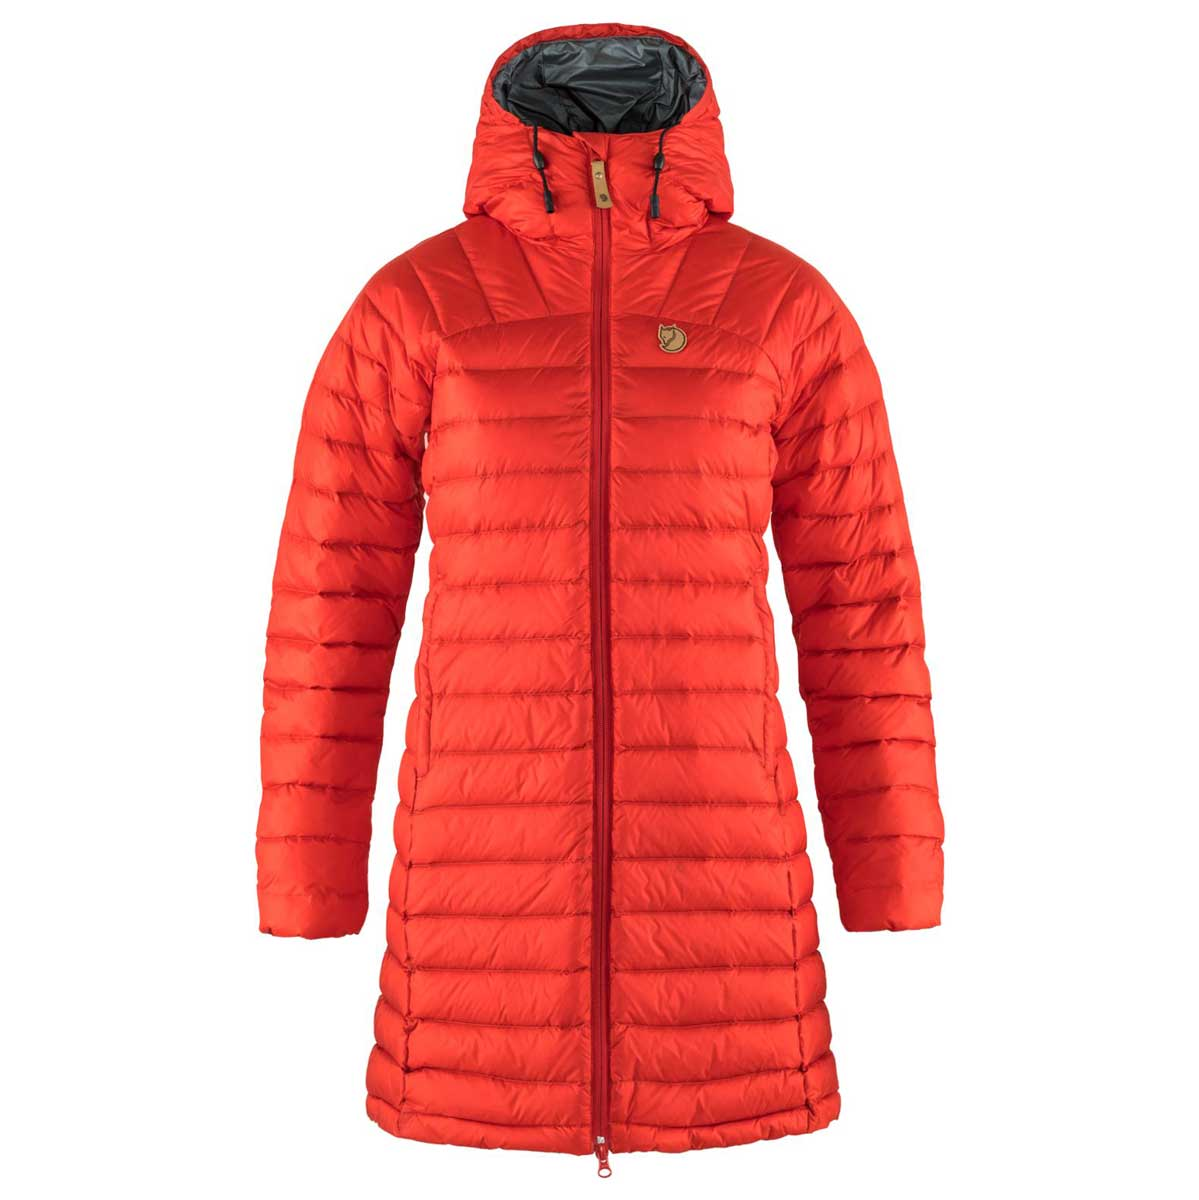 Fjallraven Snowflake Women's Parka in True Red